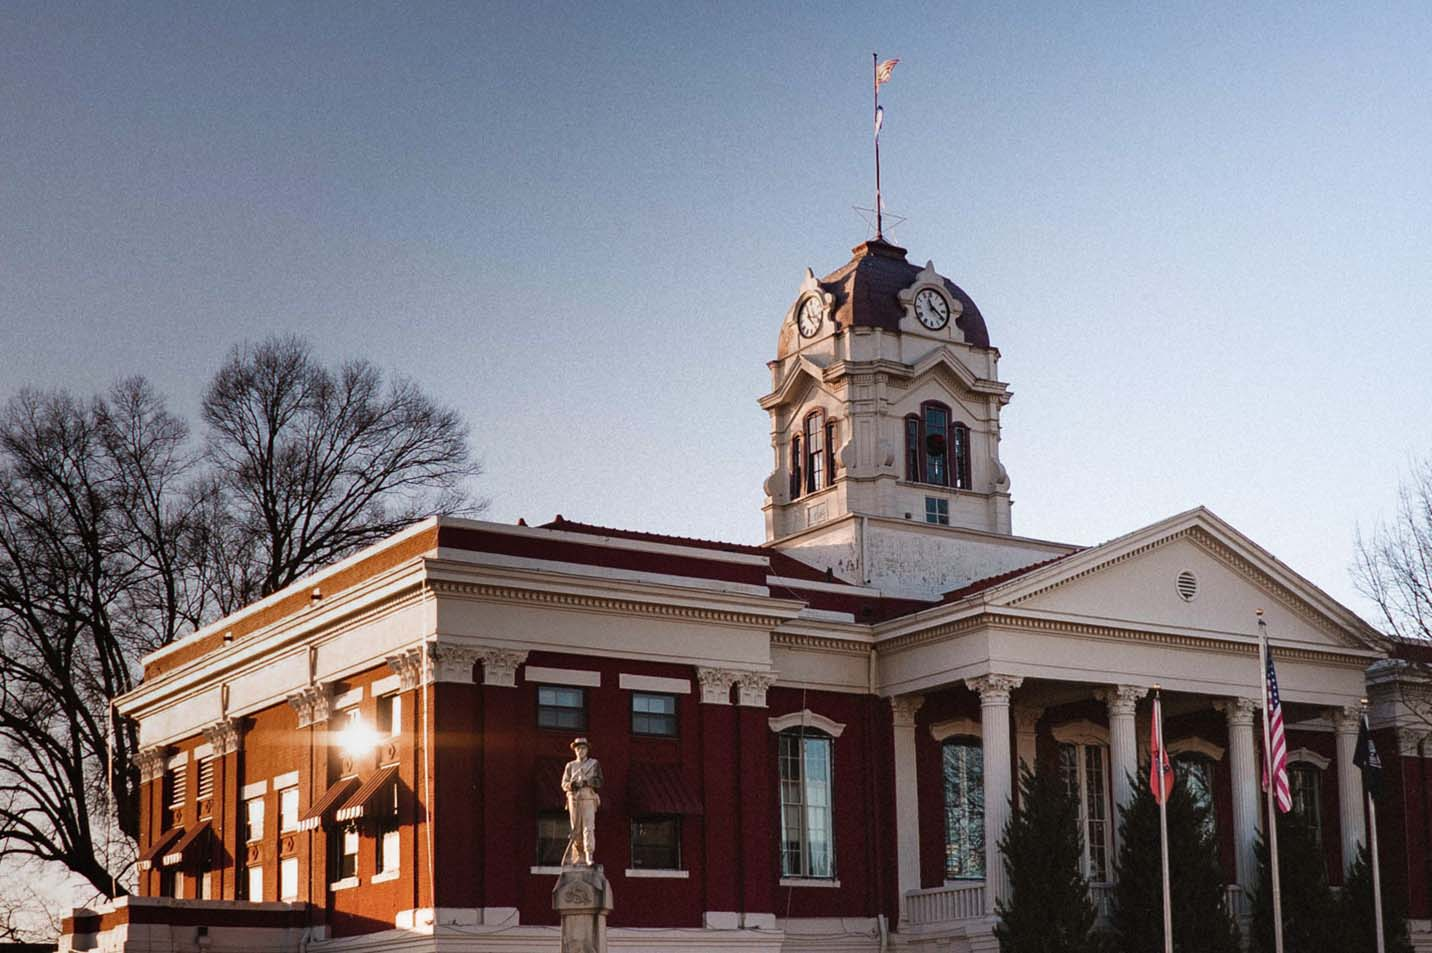 This is a photo of the Searcy Courthouse